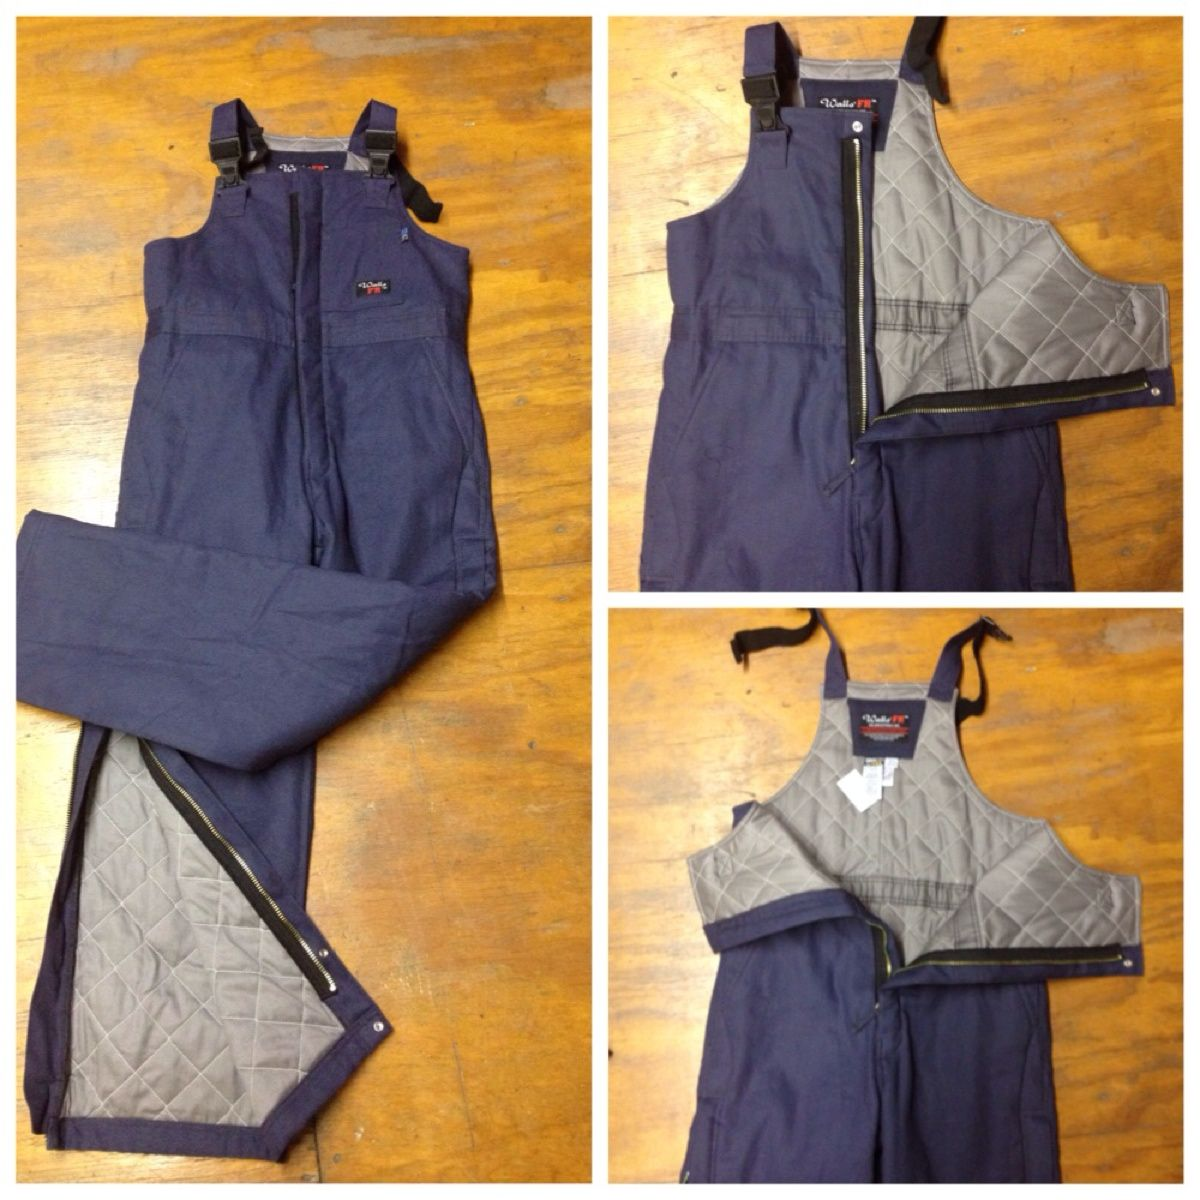 walls fr insulated bib athletic tank tops coveralls on walls coveralls id=55118